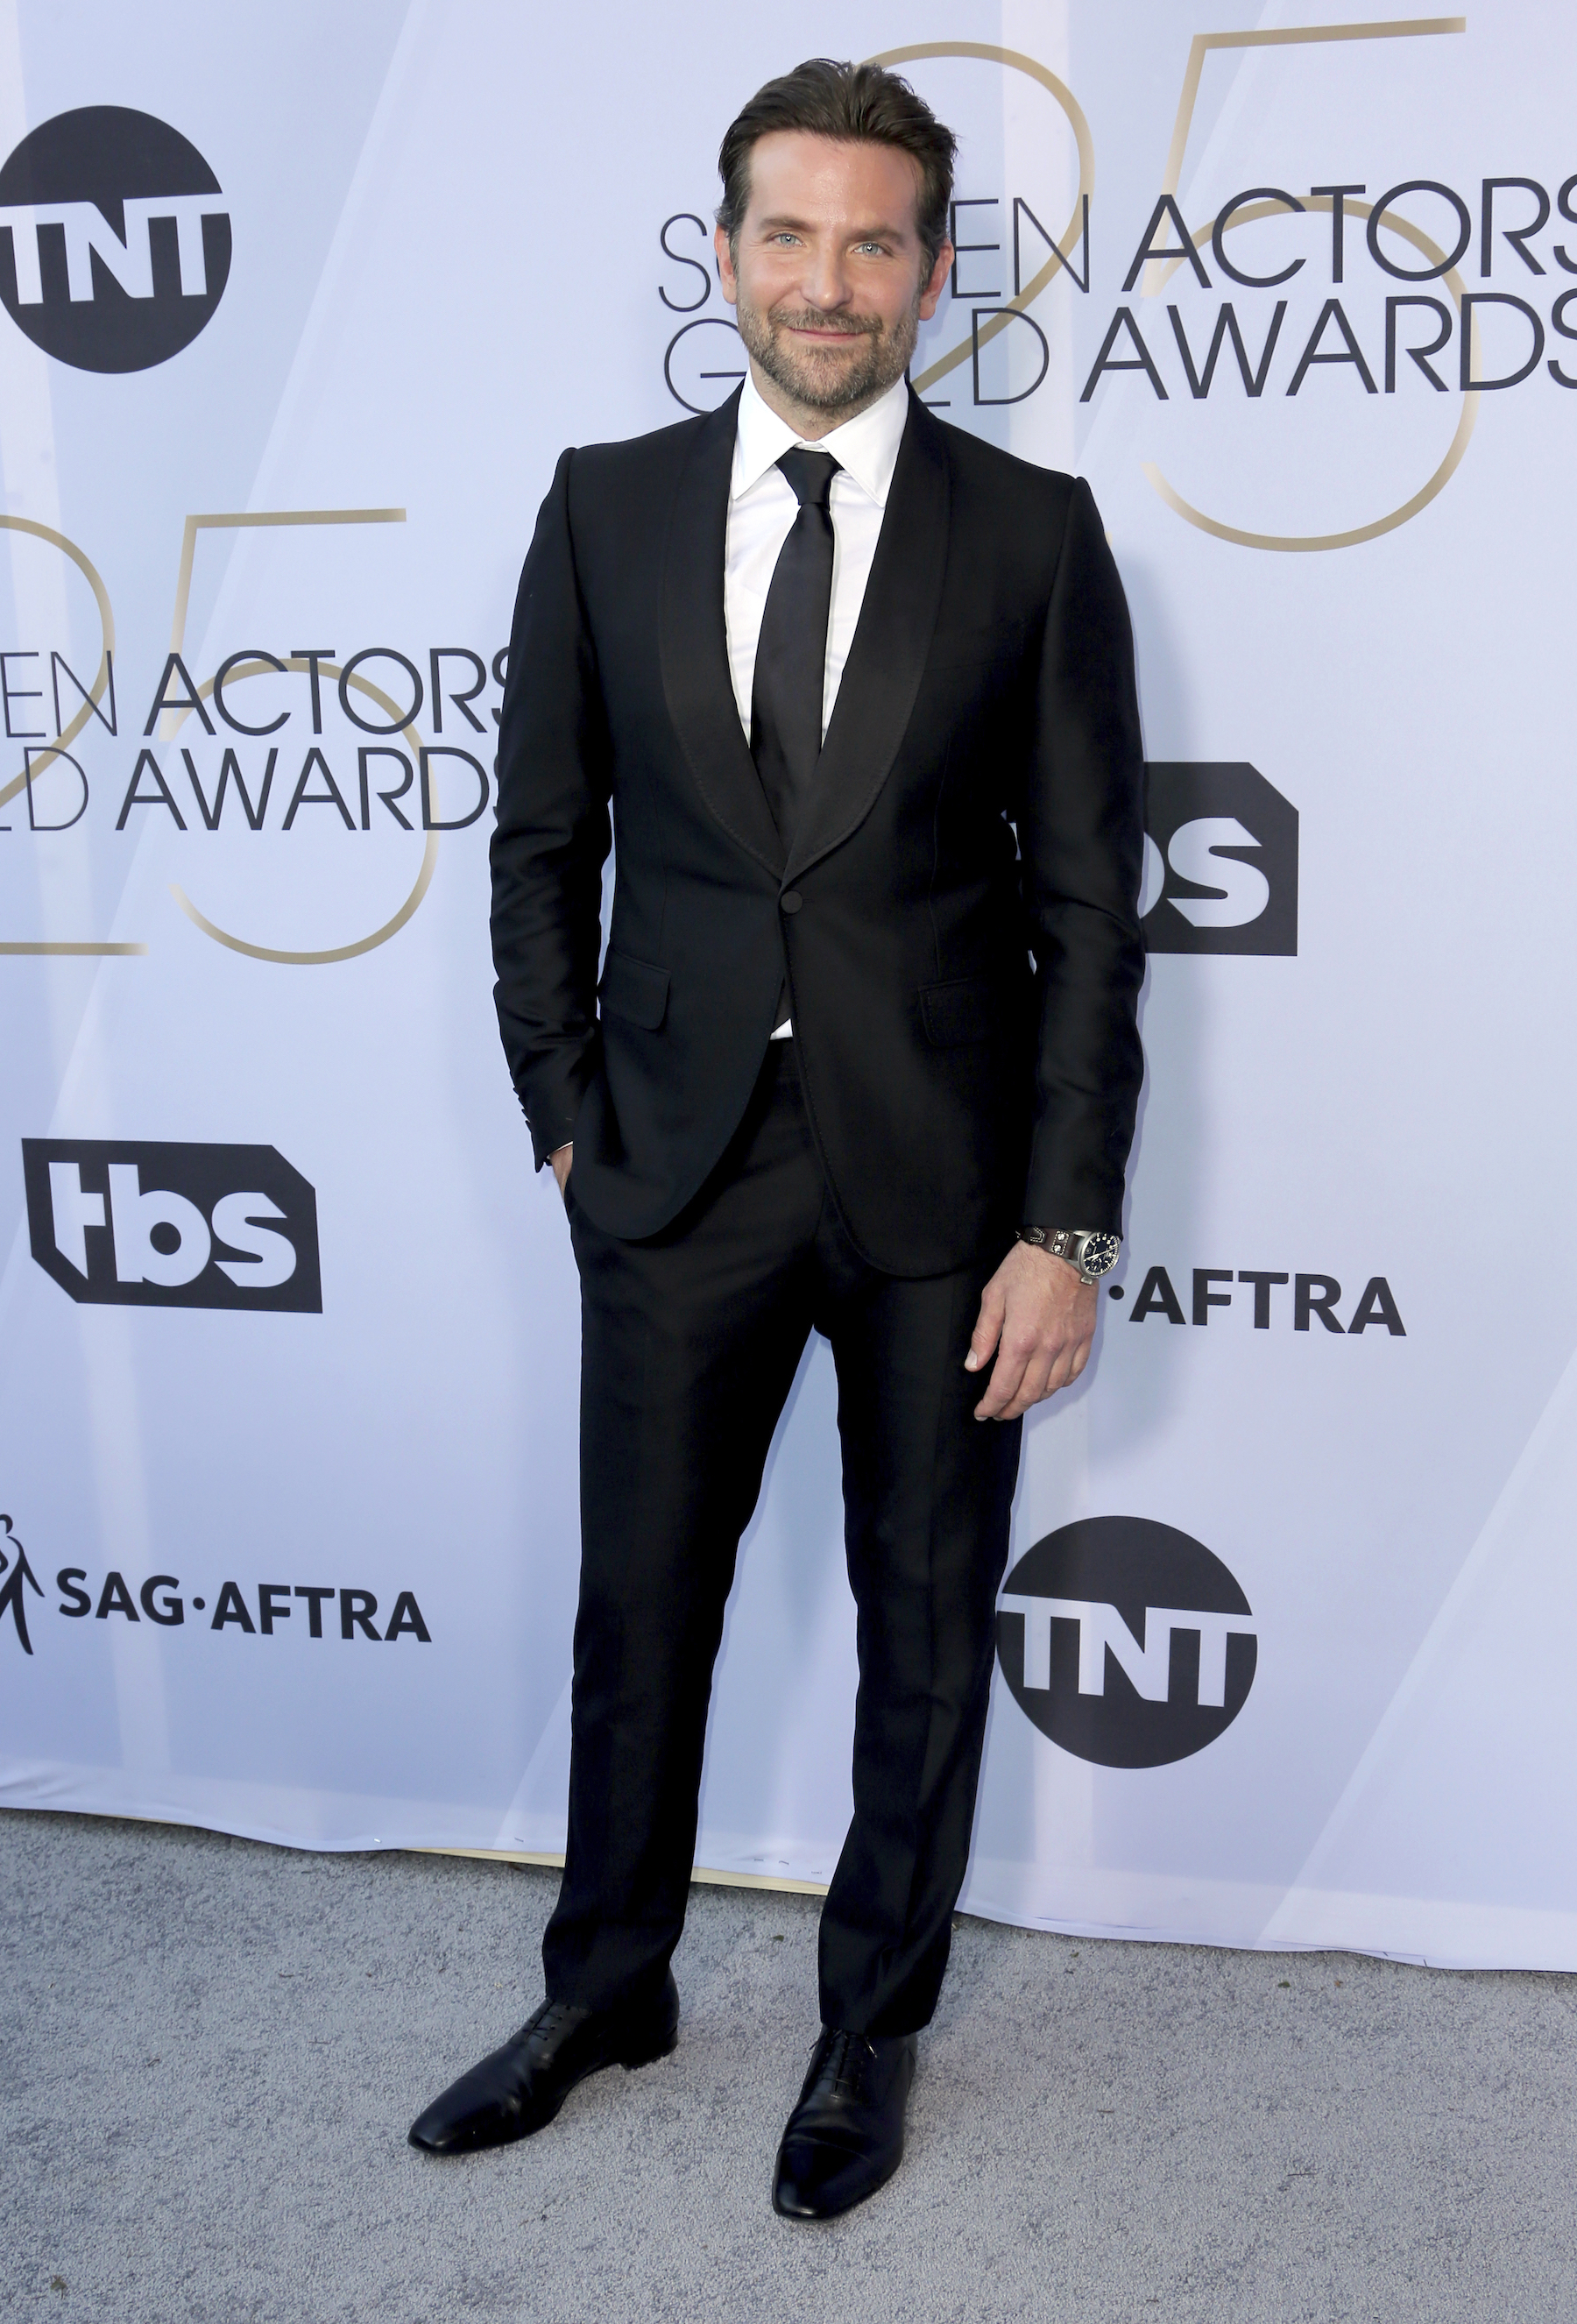 <div class='meta'><div class='origin-logo' data-origin='AP'></div><span class='caption-text' data-credit='Willy Sanjuan/Invision/AP'>Bradley Cooper arrives at the 25th annual Screen Actors Guild Awards at the Shrine Auditorium & Expo Hall on Sunday, Jan. 27, 2019, in Los Angeles.</span></div>